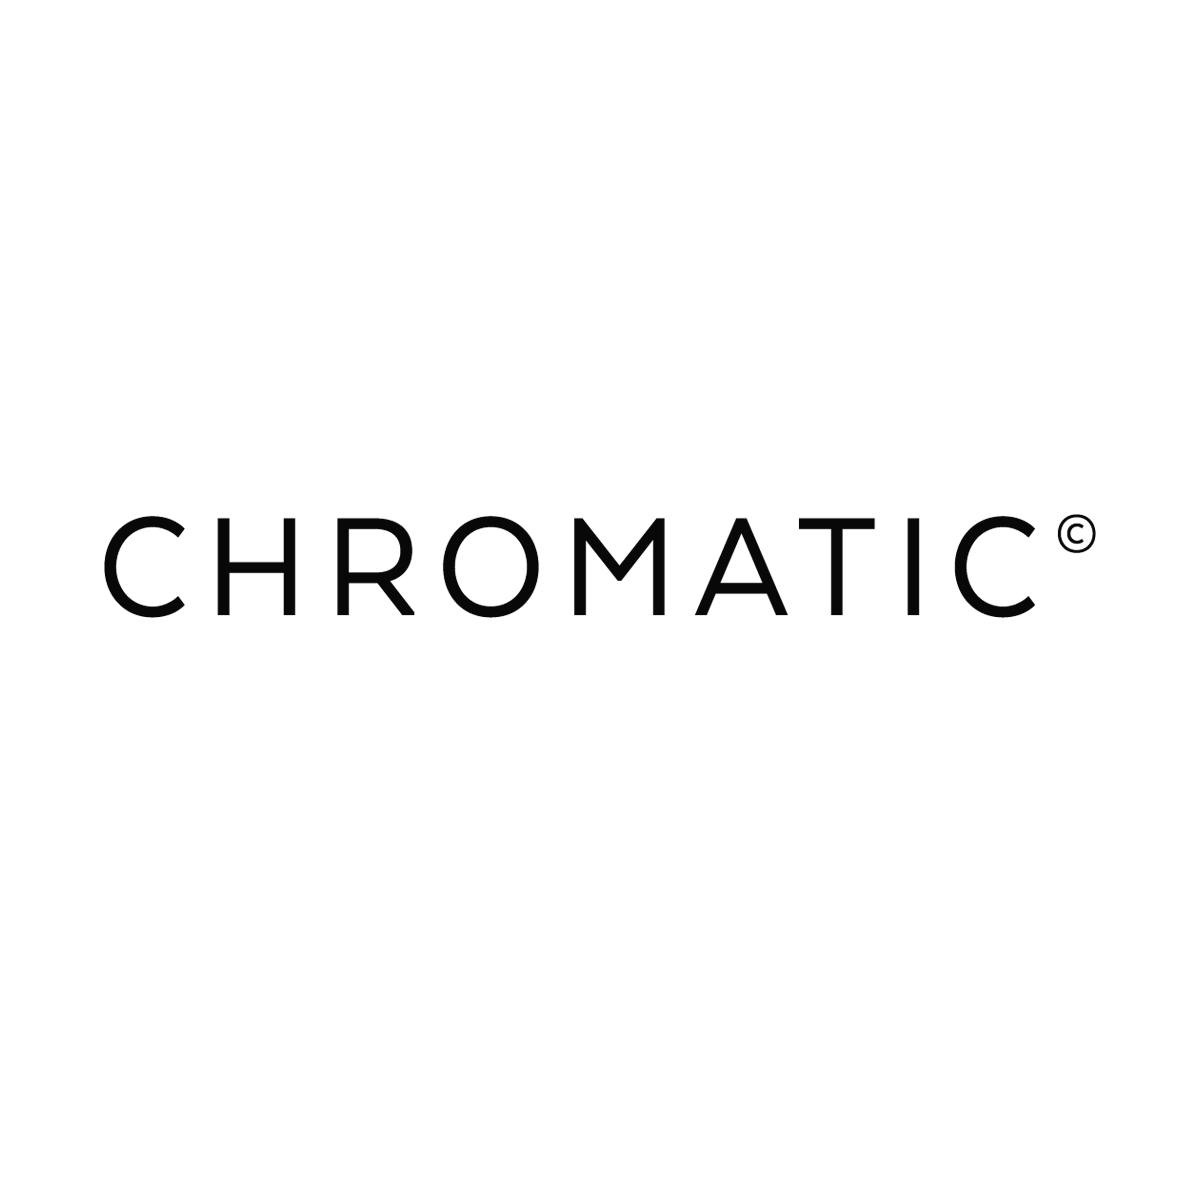 chromatic.png